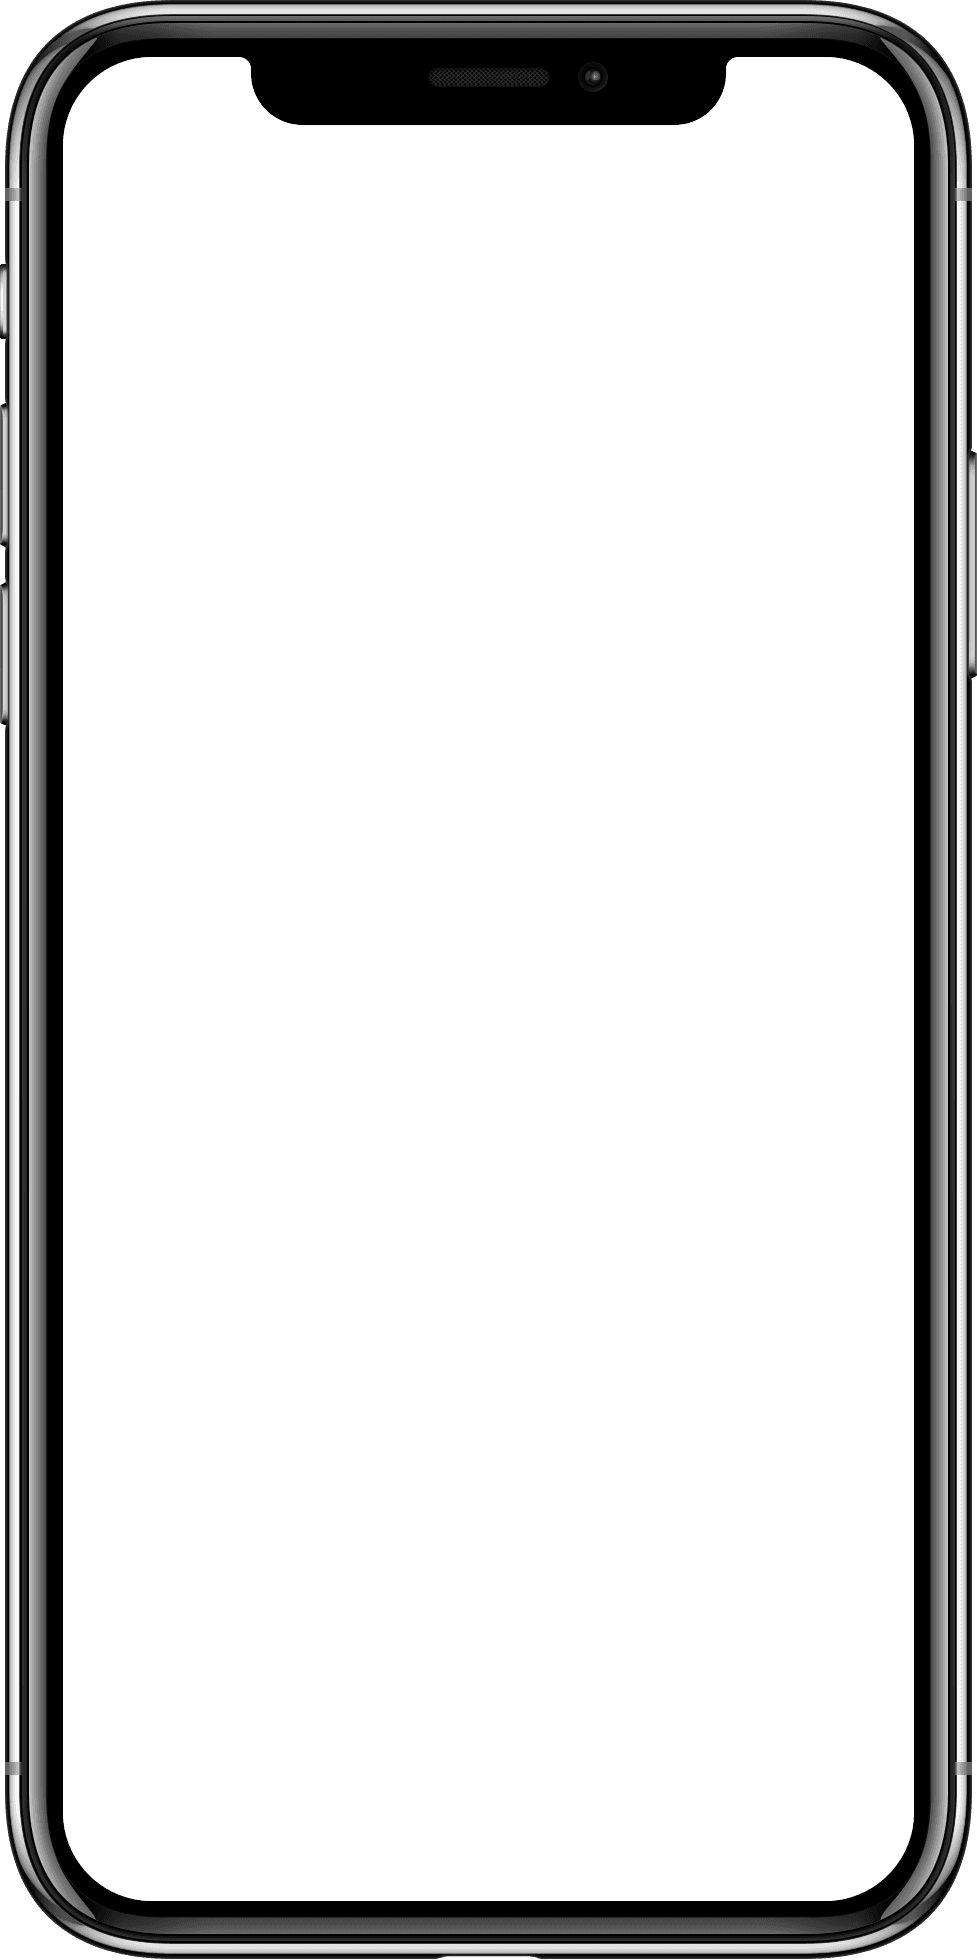 Iphone x vector clipart image black and white stock Blank Iphone Png - Svg Iphone X Vector Clipart - Full Size ... image black and white stock